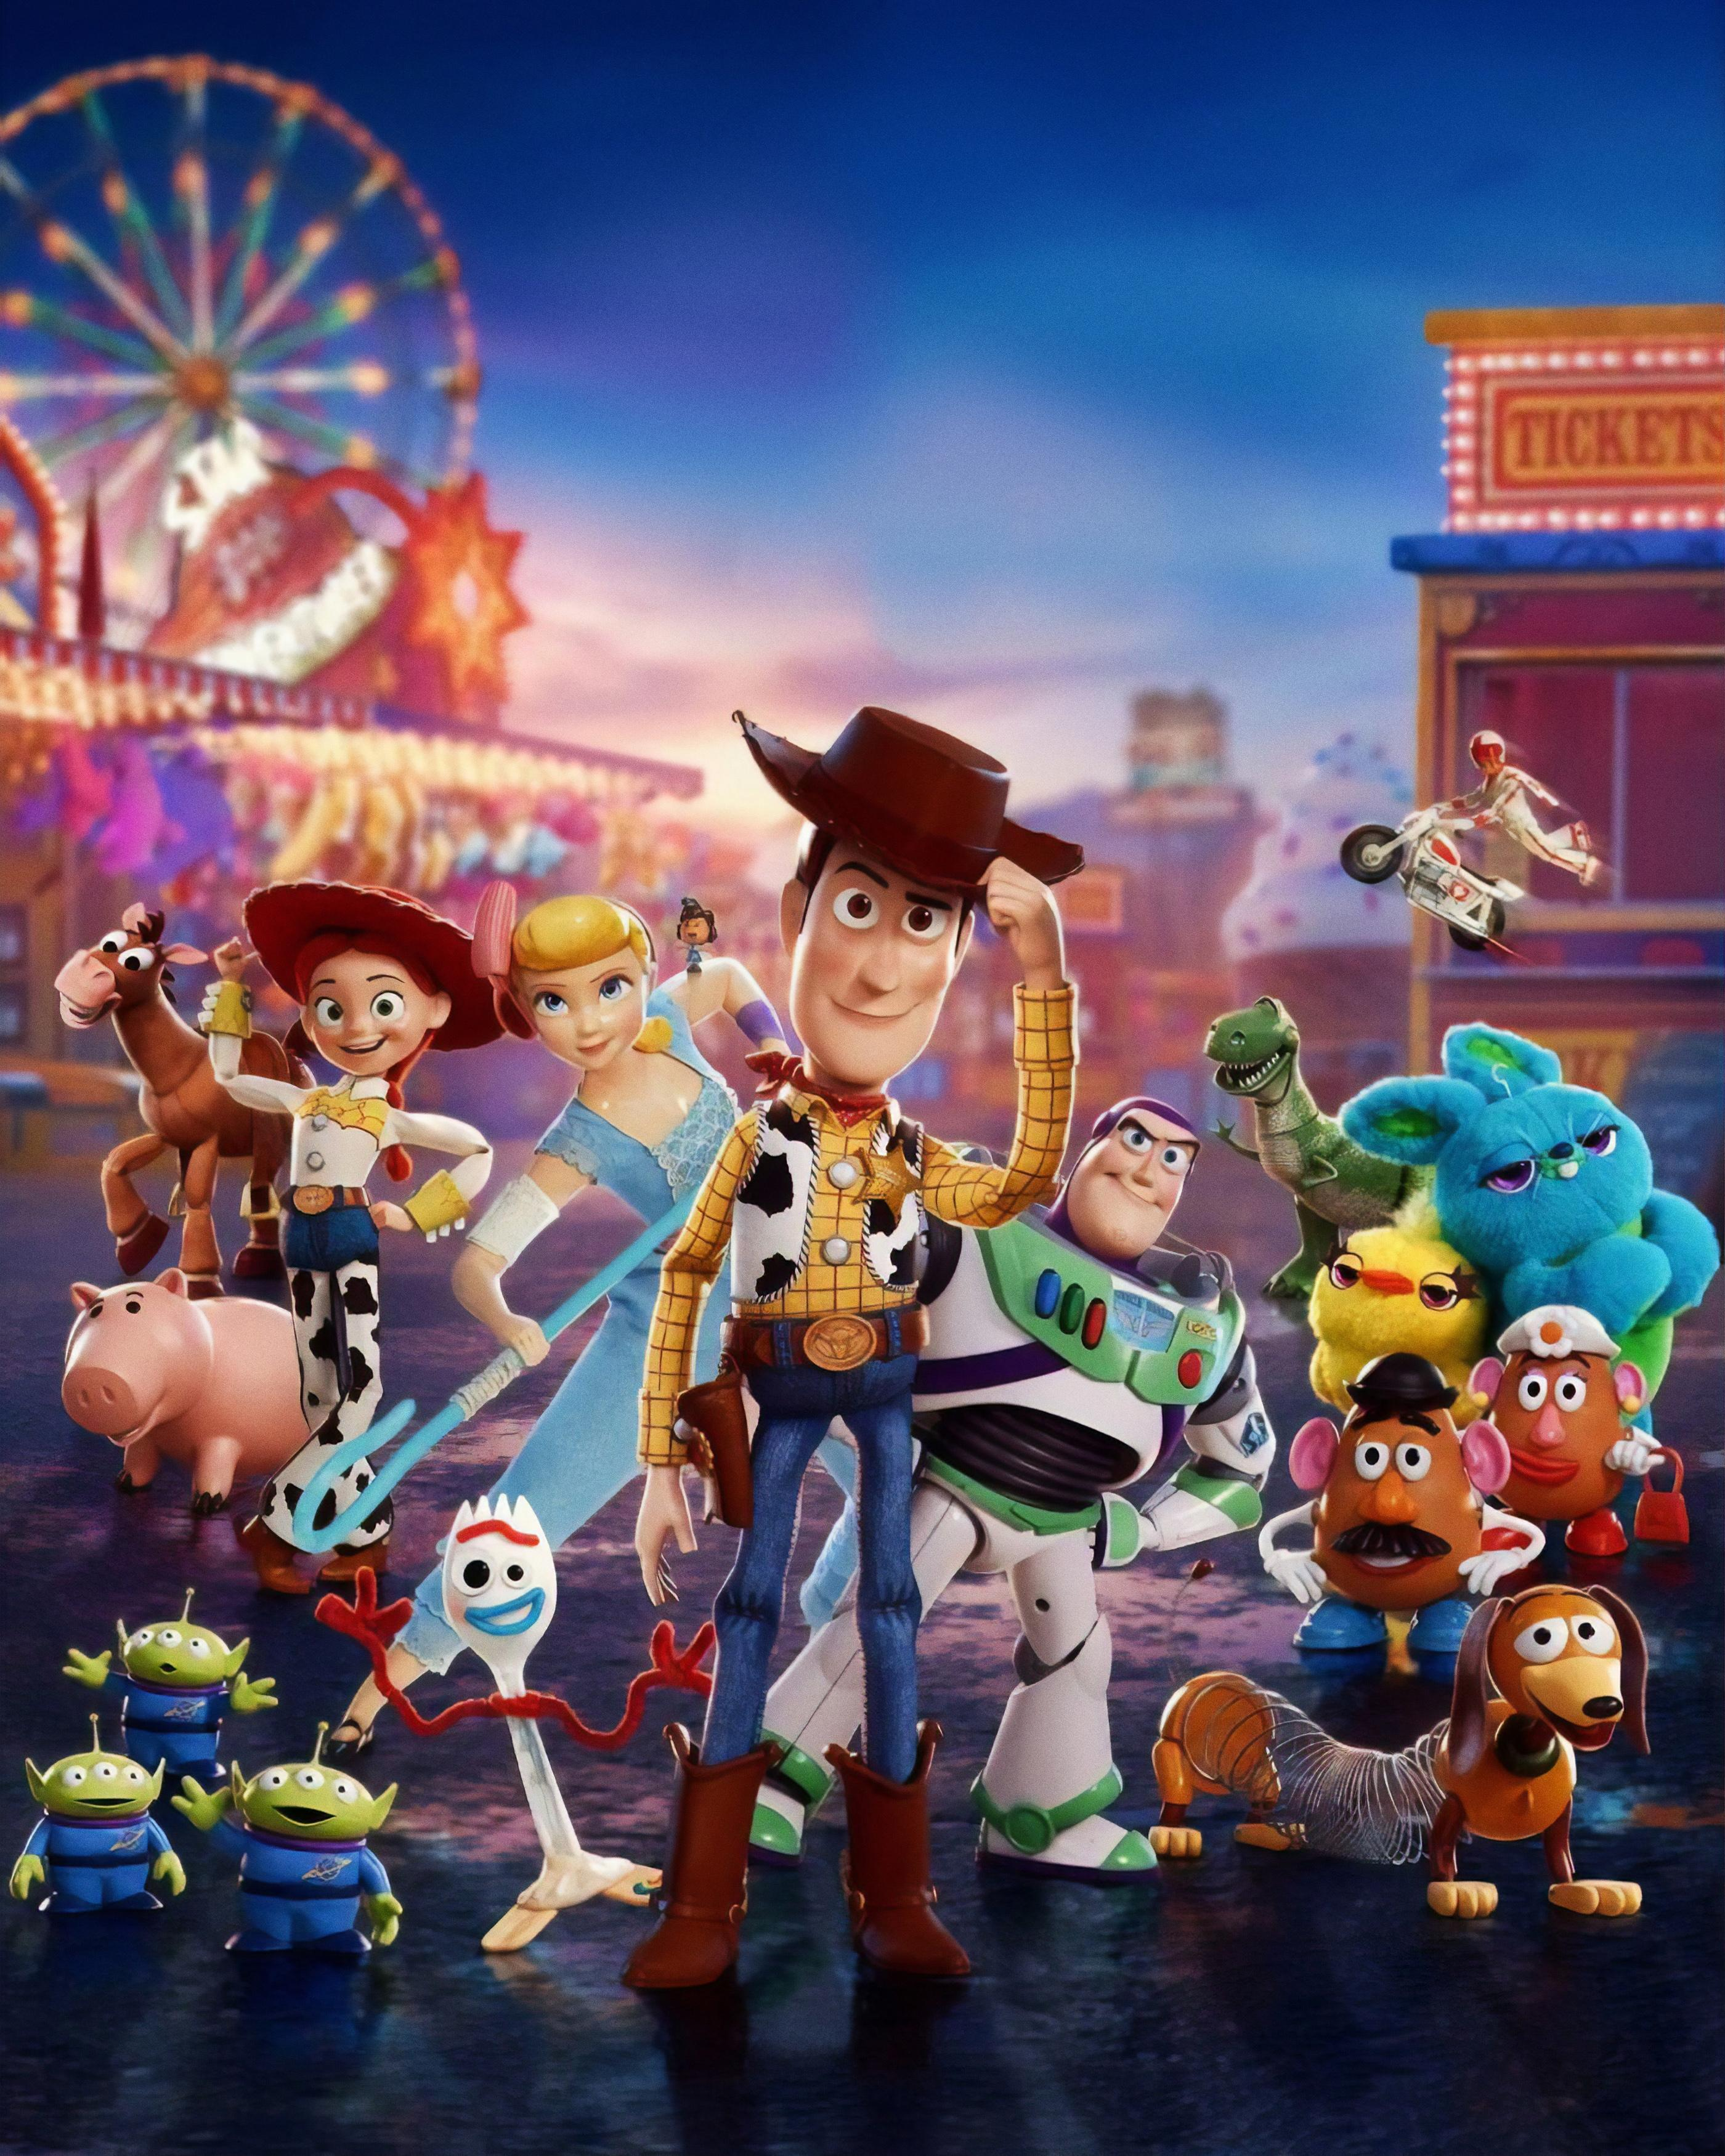 Wallpaper Toy Story 4, Animation, Pixar, 2019, HD, Movies, #17681